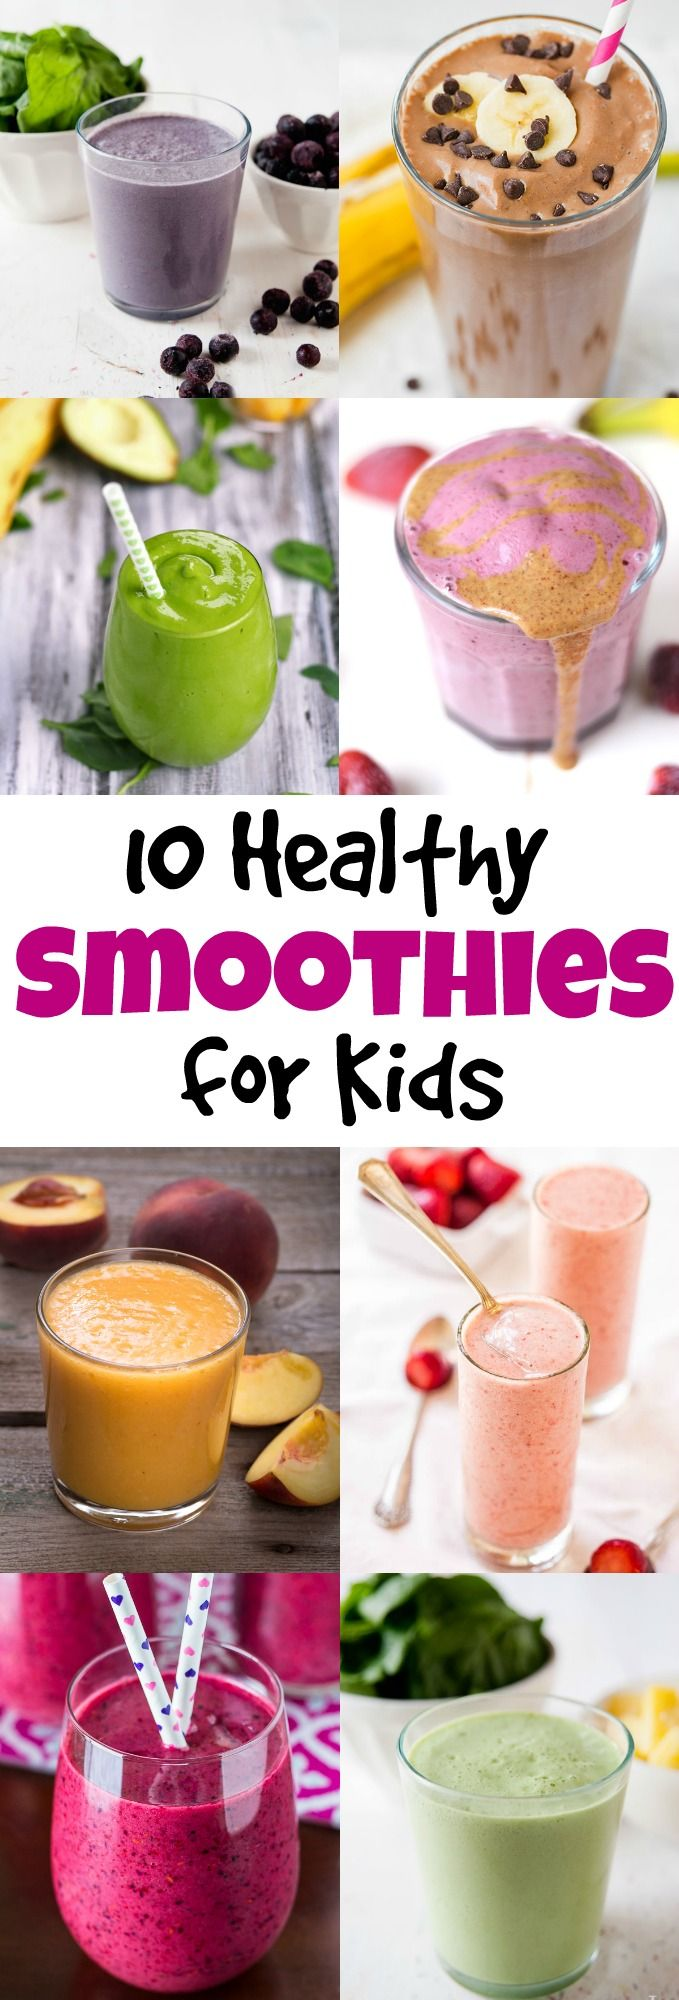 What better way to get more fruits and veggies in your kids' diet than a refreshing smoothie! Your kids will love these smoothies for breakfast or a snack.